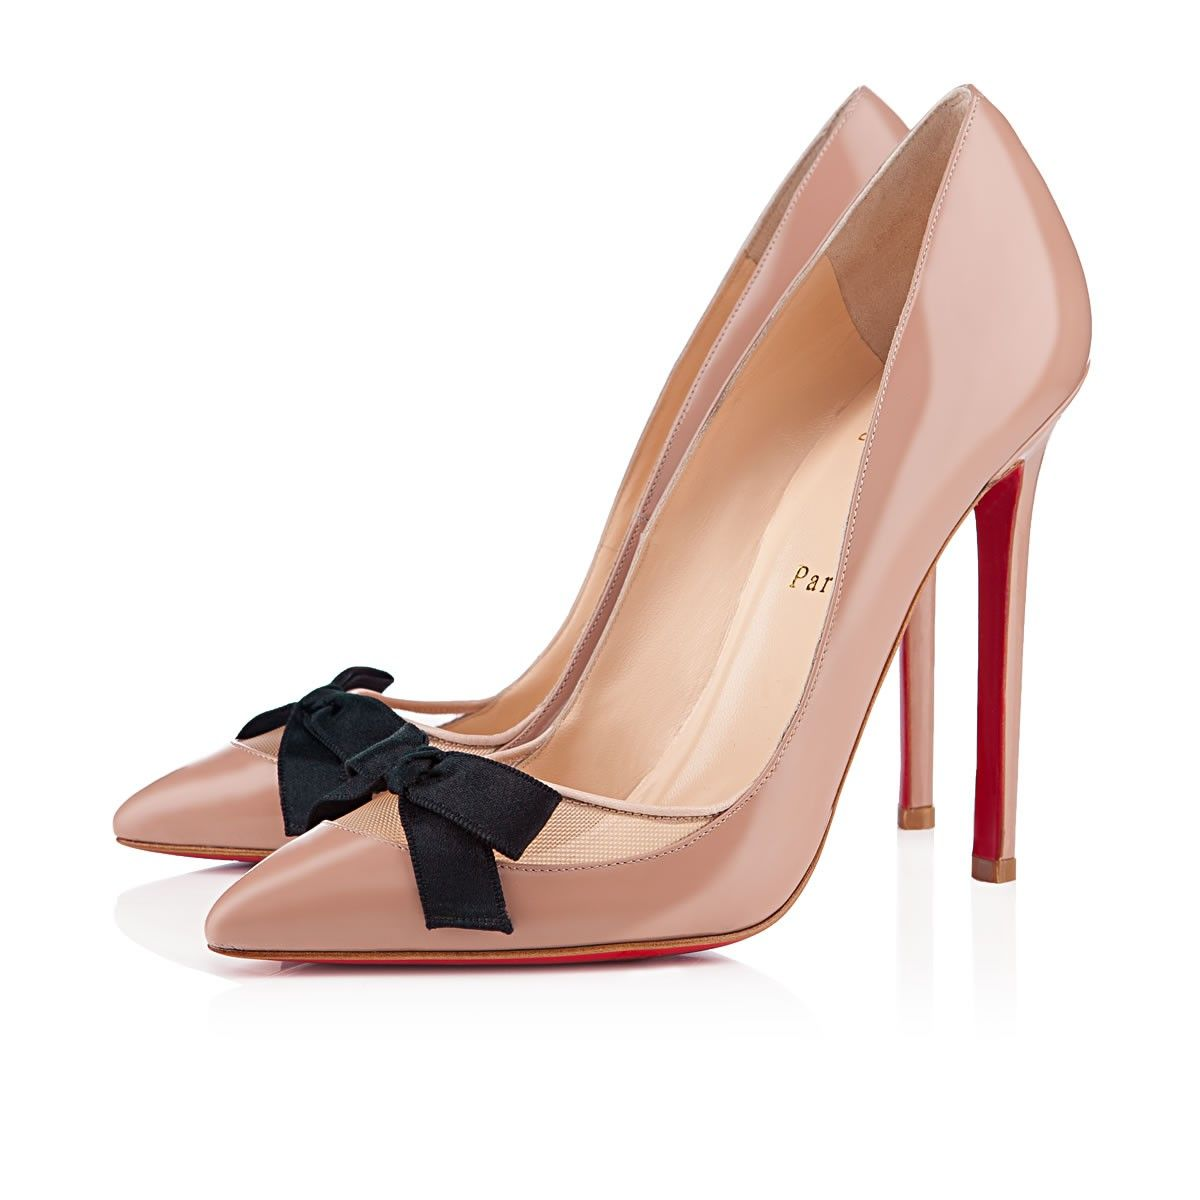 """Christian Louboutin """"Love Me"""" Pump in Nude Patent Leather... I'd love you if you were on my feet!!!"""